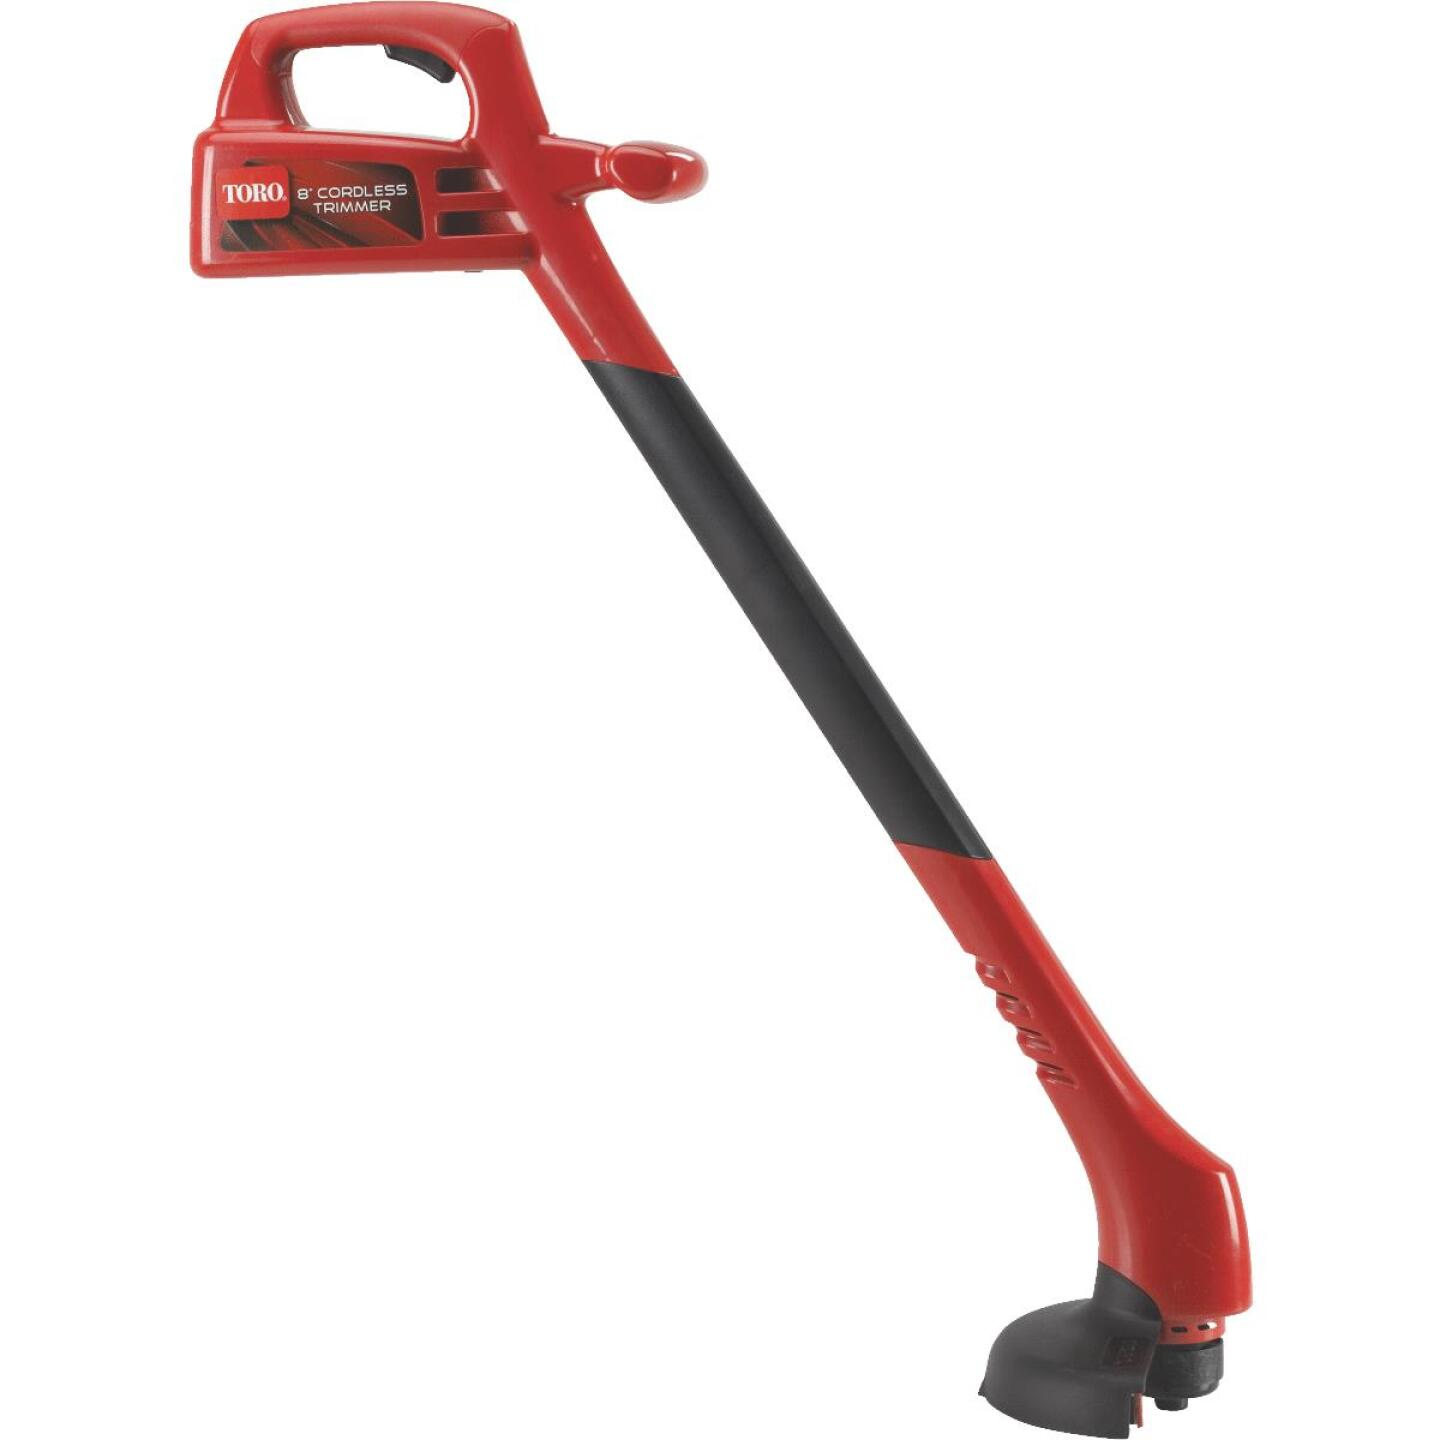 Toro 12V 8 In. Ni-Cad Straight Cordless String Trimmer Image 1